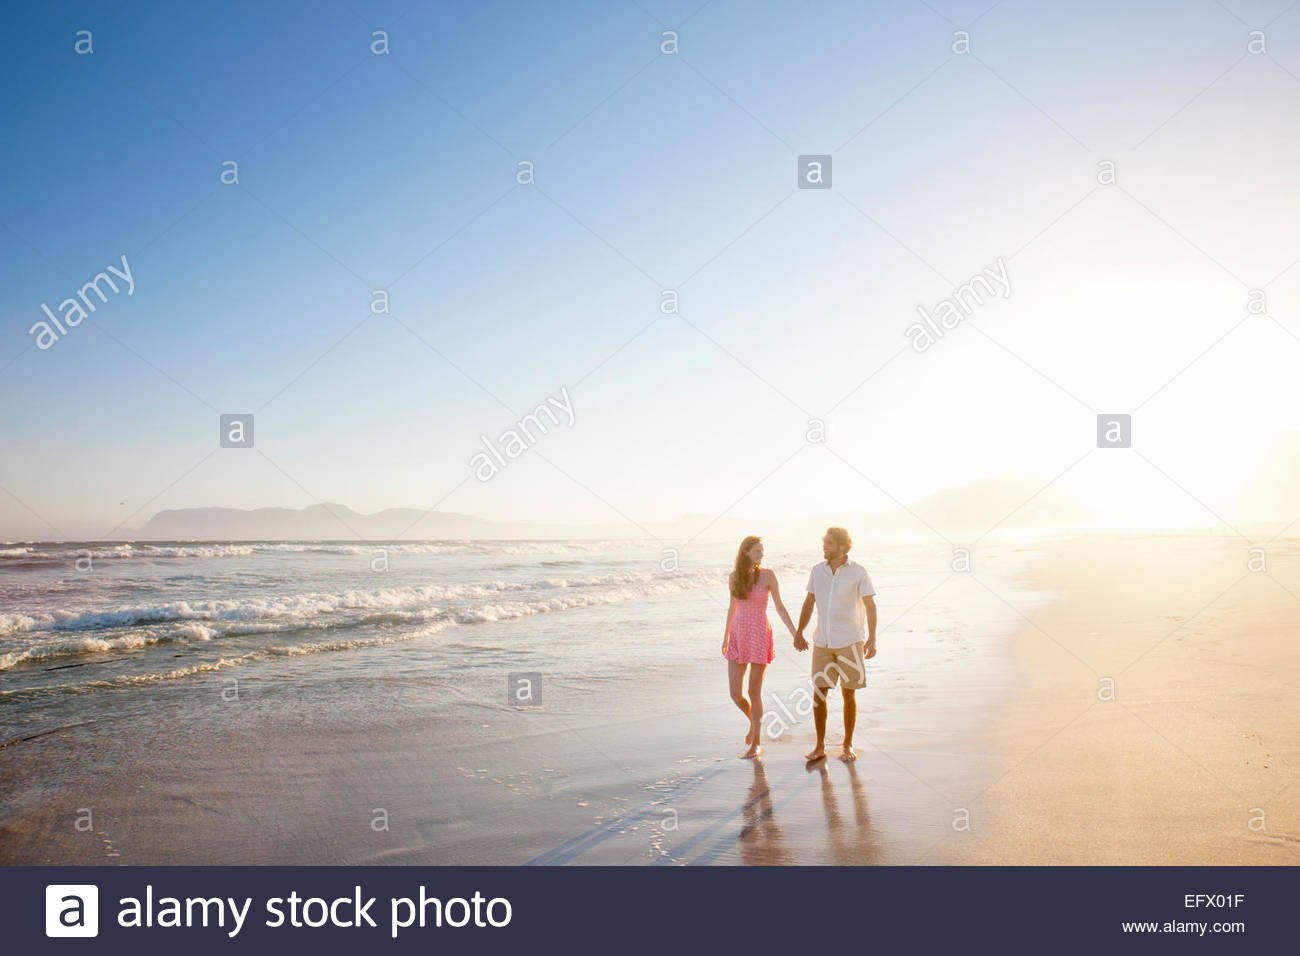 Couple, holding hands, walking along sunny beach - Stock Image